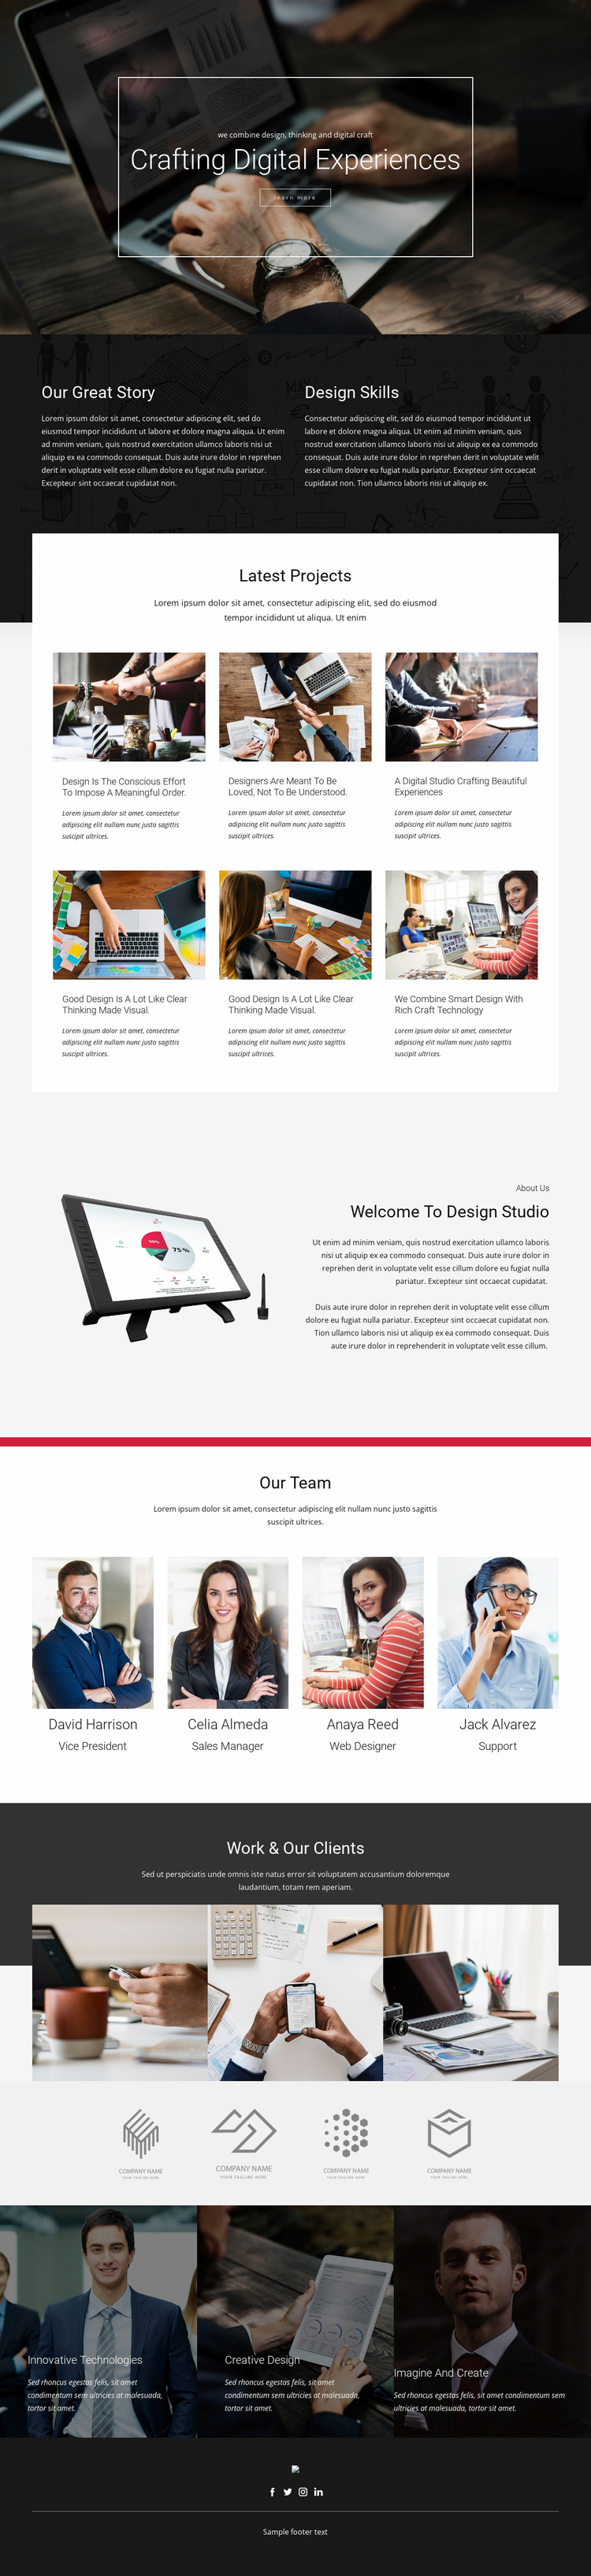 Crafting Digital Design Studio Website Builder